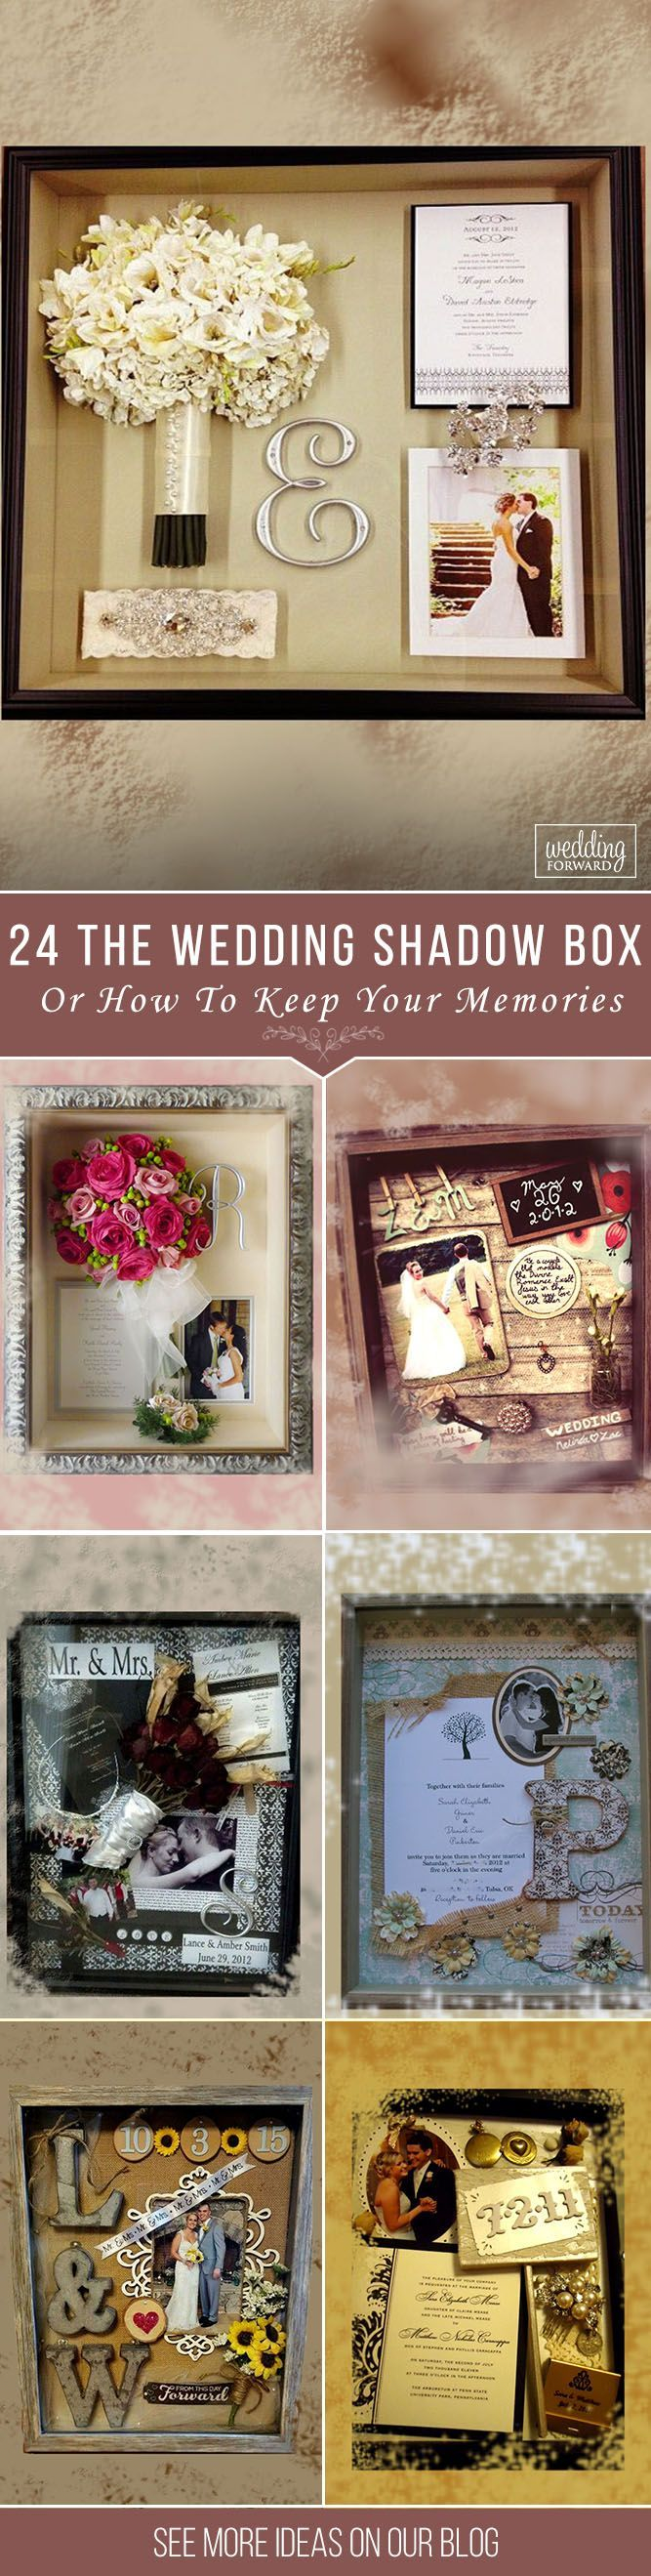 The Wedding Shadow Box Or How To Keep Your Memories ❤️ A small box that holds the most wonderful memories of a special day.